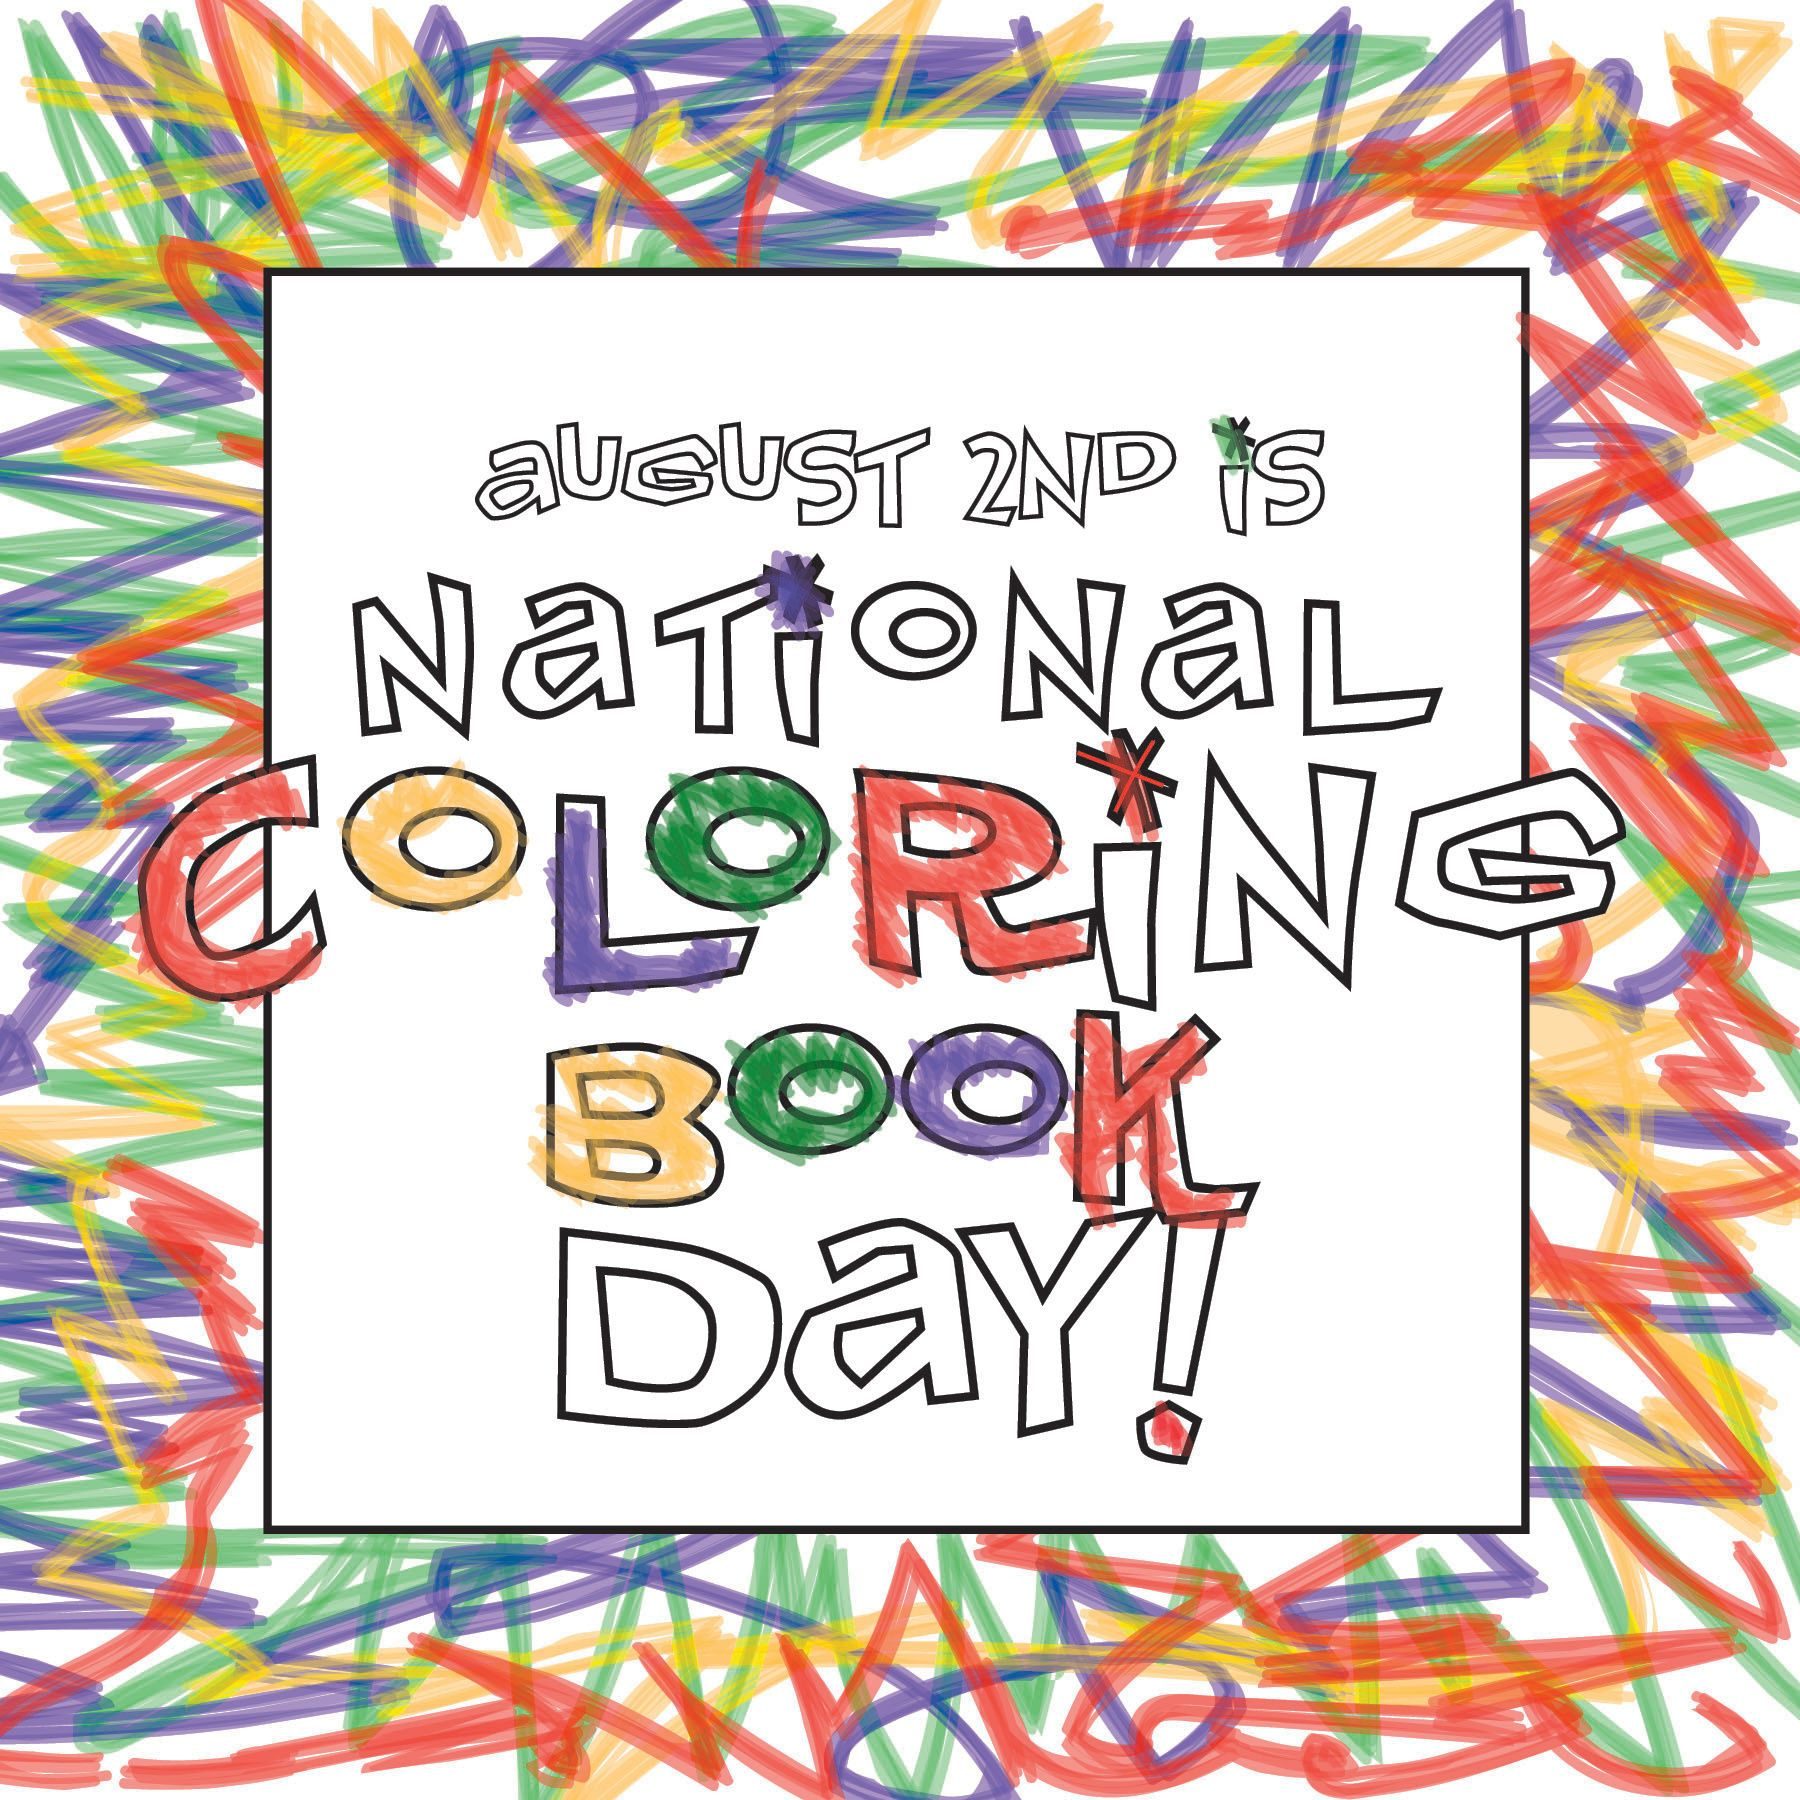 August 2nd Is National Coloring Book Day Retro Design Retro Love Design